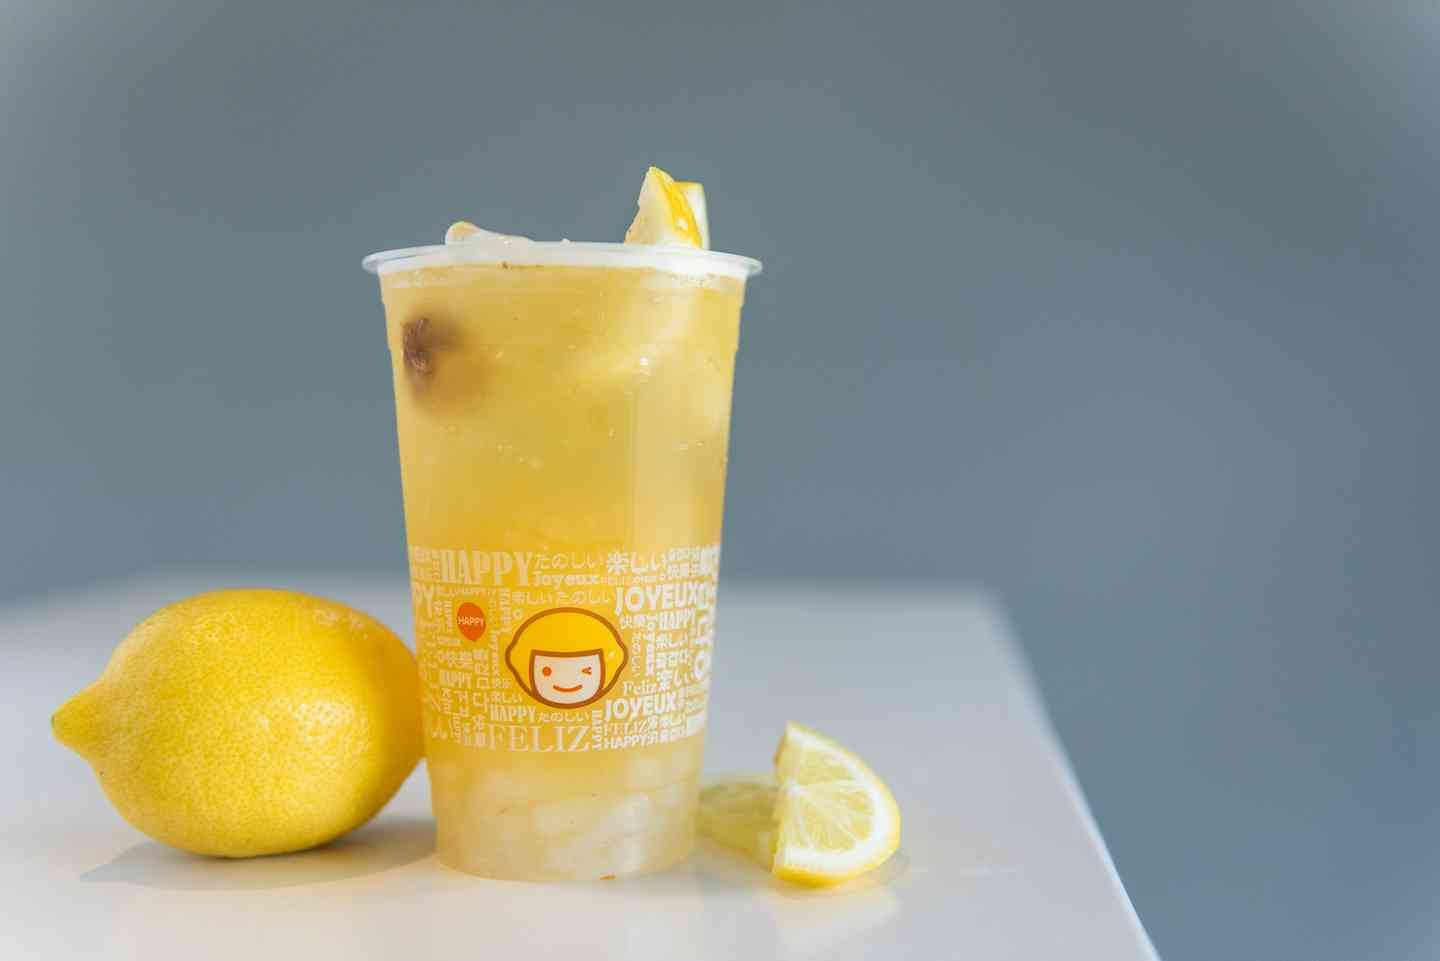 C4 Kumquat Lemon Jasmine Green Tea